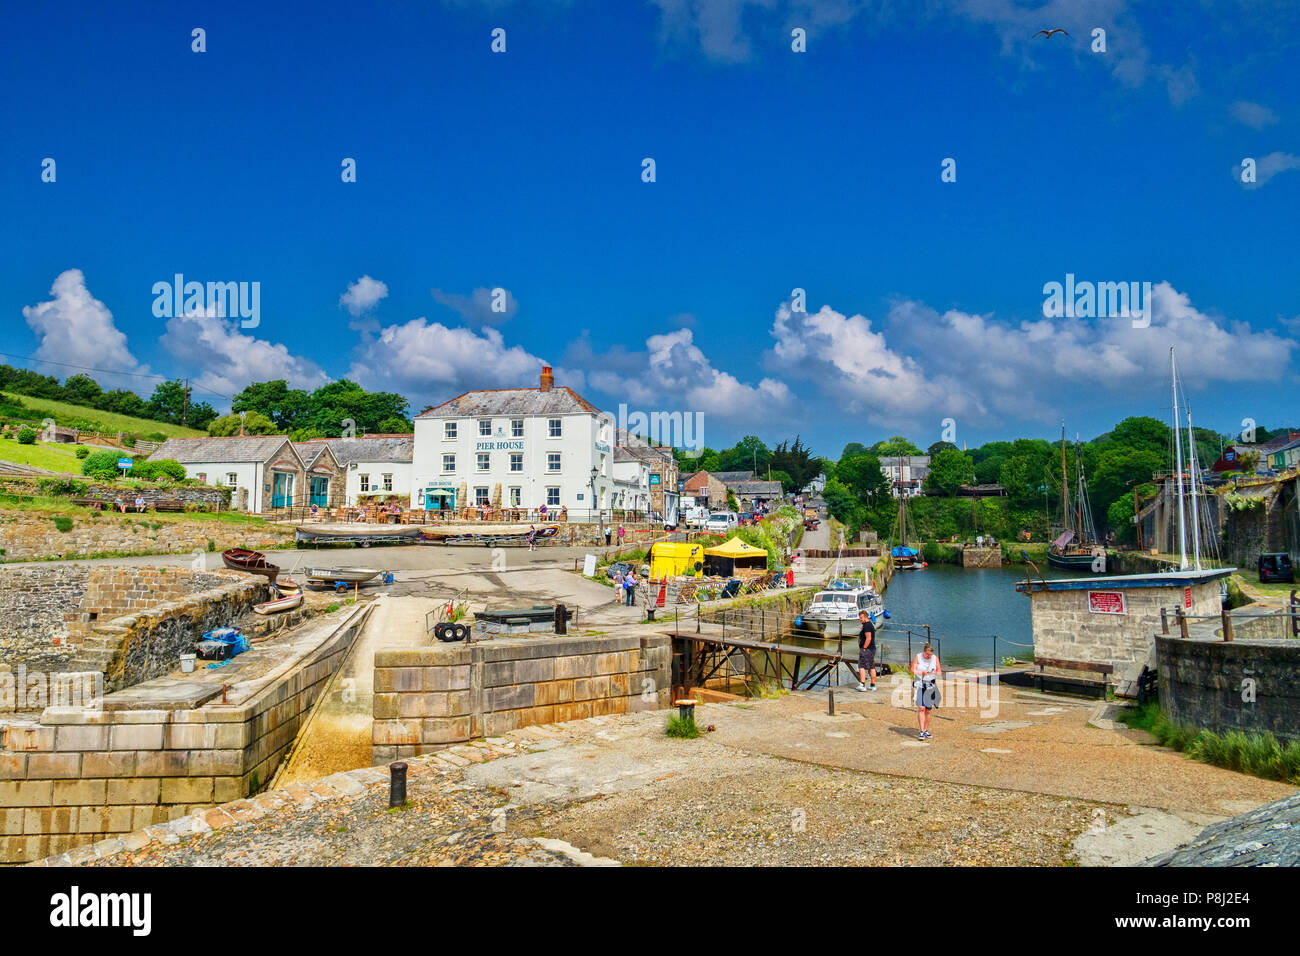 11 June 2018: Charlestown, Cornwall, UK - An unspoiled example of a Georgian working port, it was built betweel 1791 and 1801, and has been used as a  - Stock Image